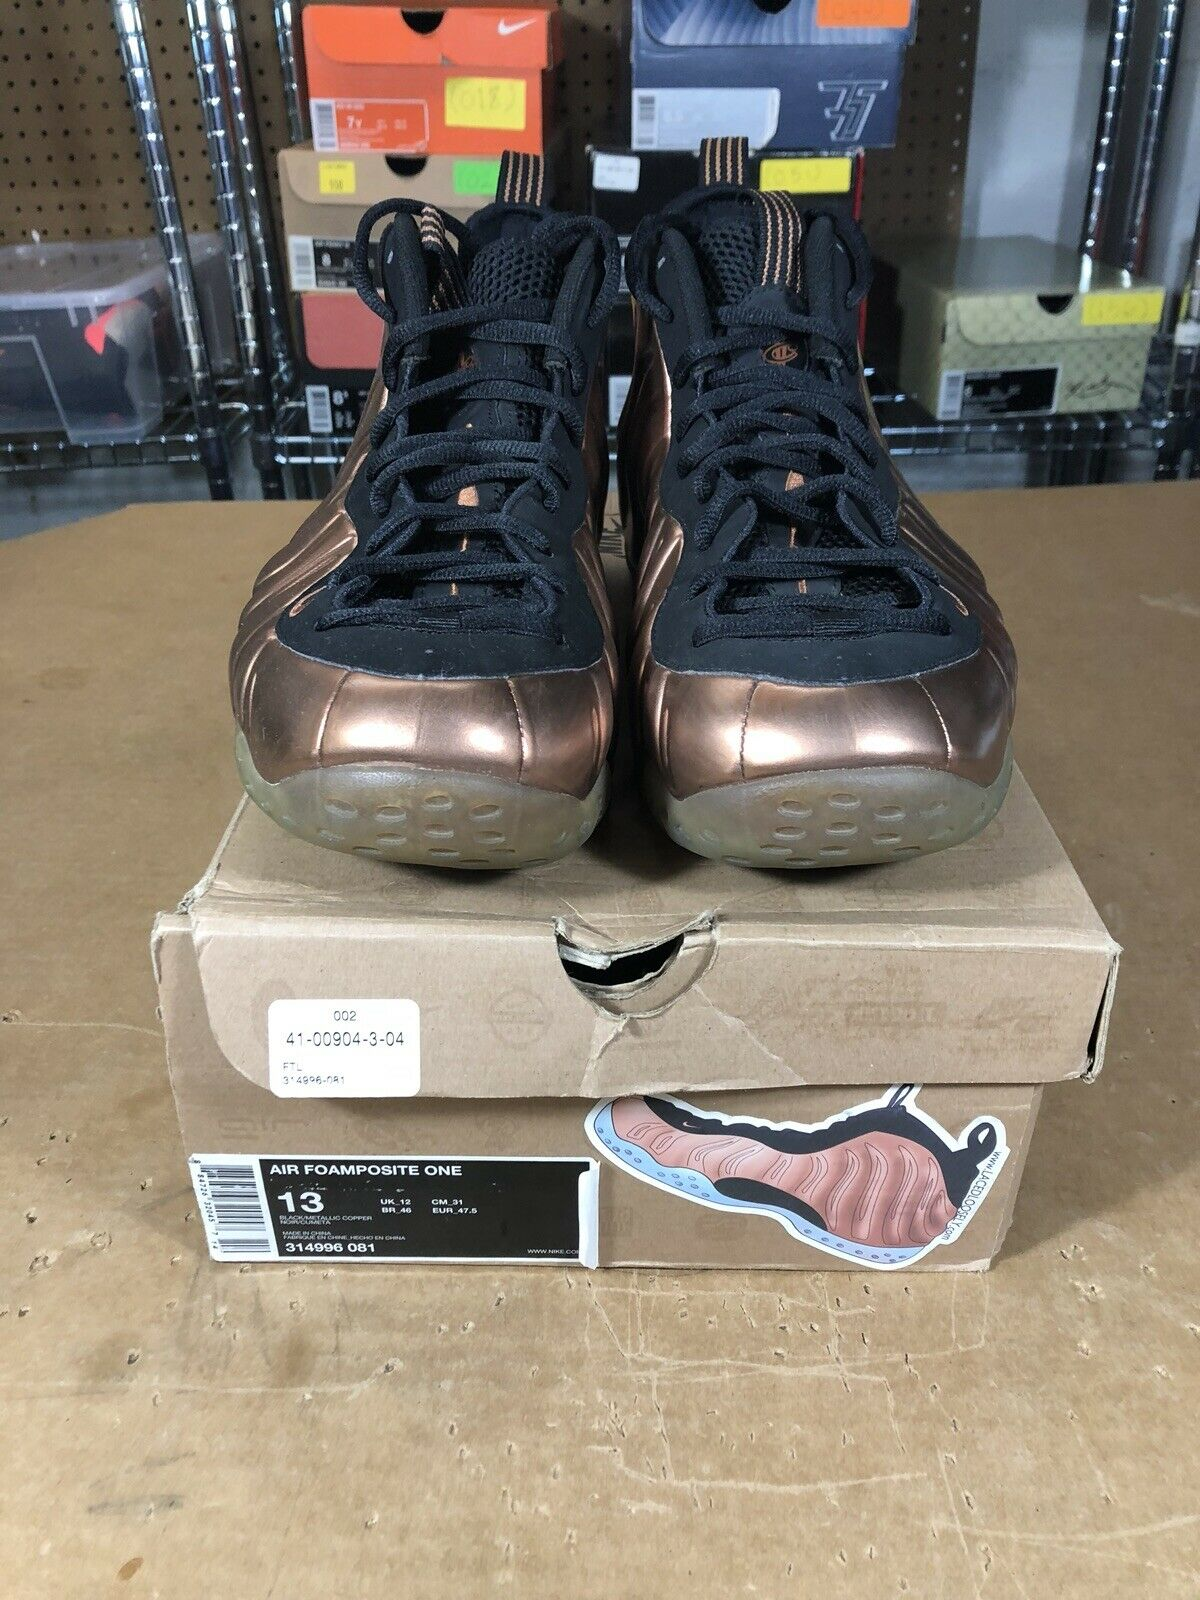 100% Authentic Nike Air Foamposite One Copper Size 13 314996 081